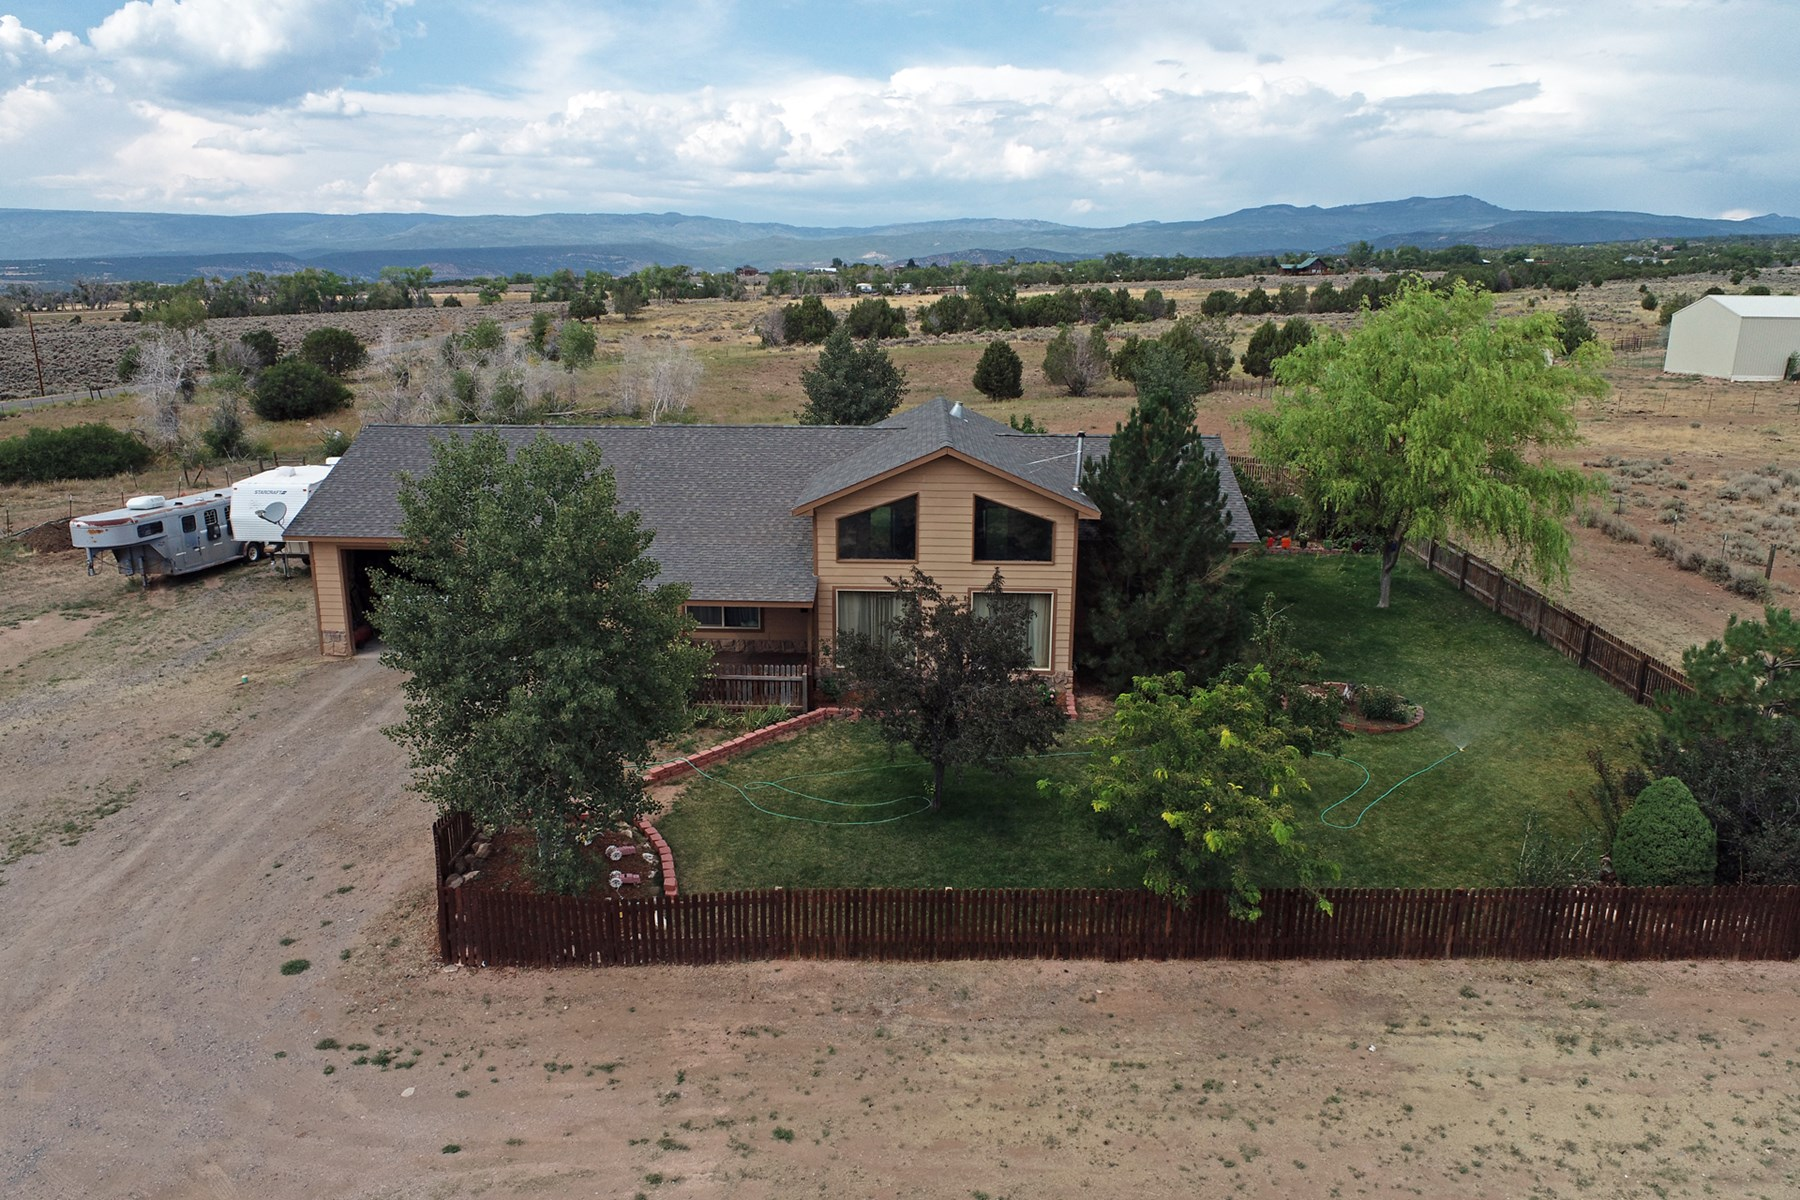 Horse Property on Acreage For Sale in Colorado